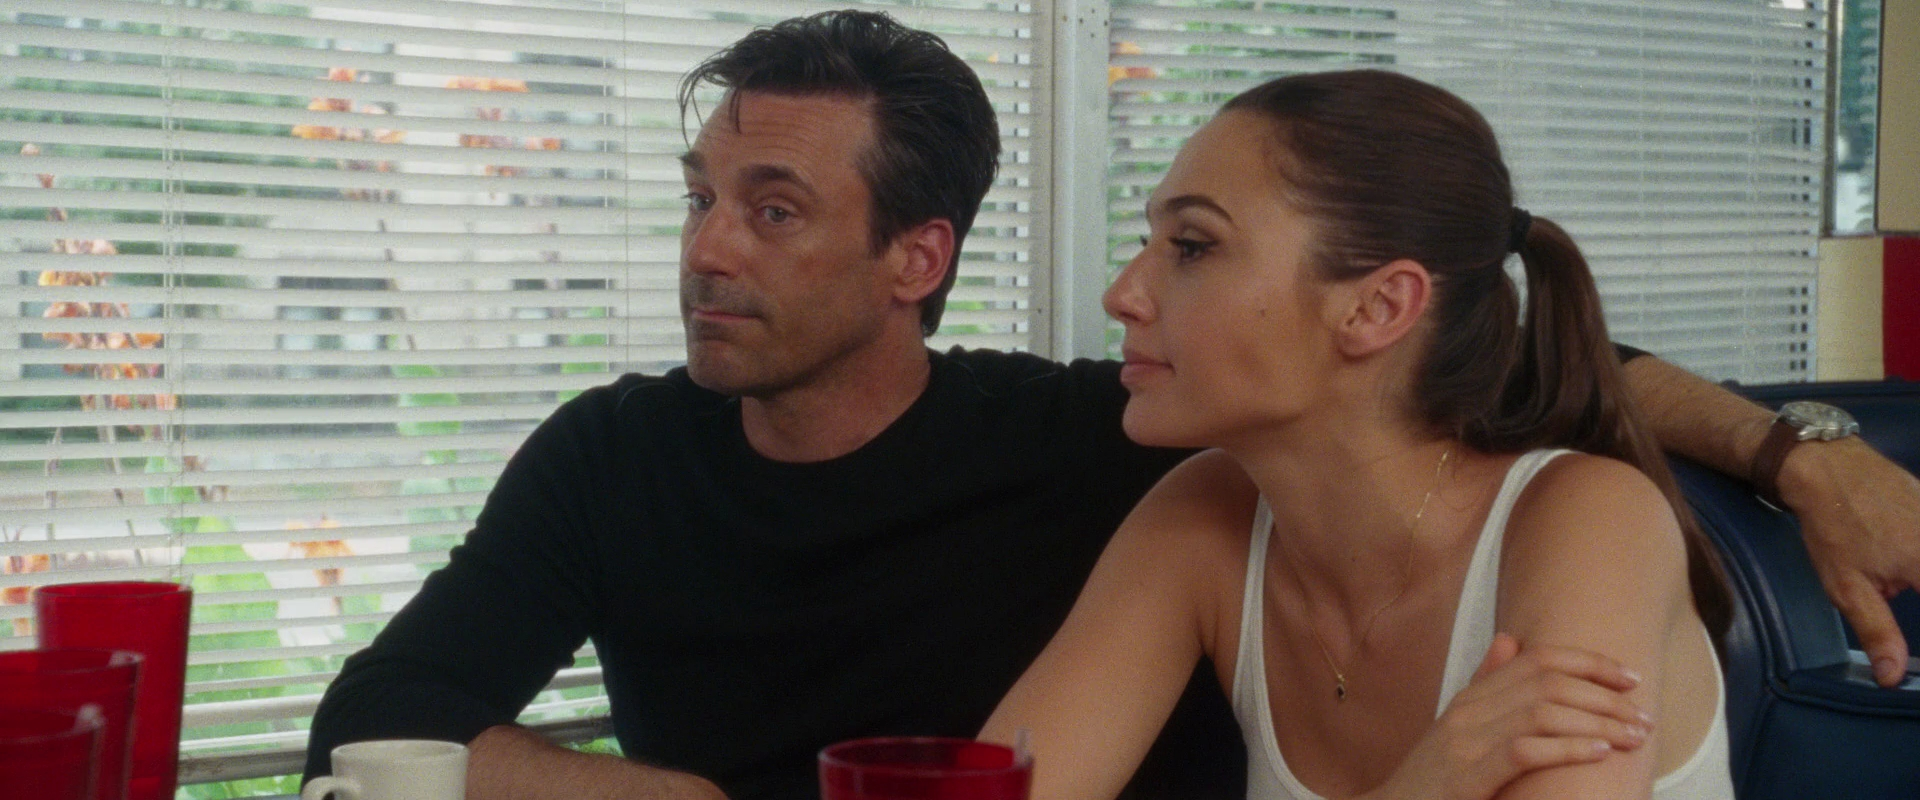 Keeping Up With The Joneses Download: Keeping Up With The Joneses 2016 REAL REPACK 1080p BluRay